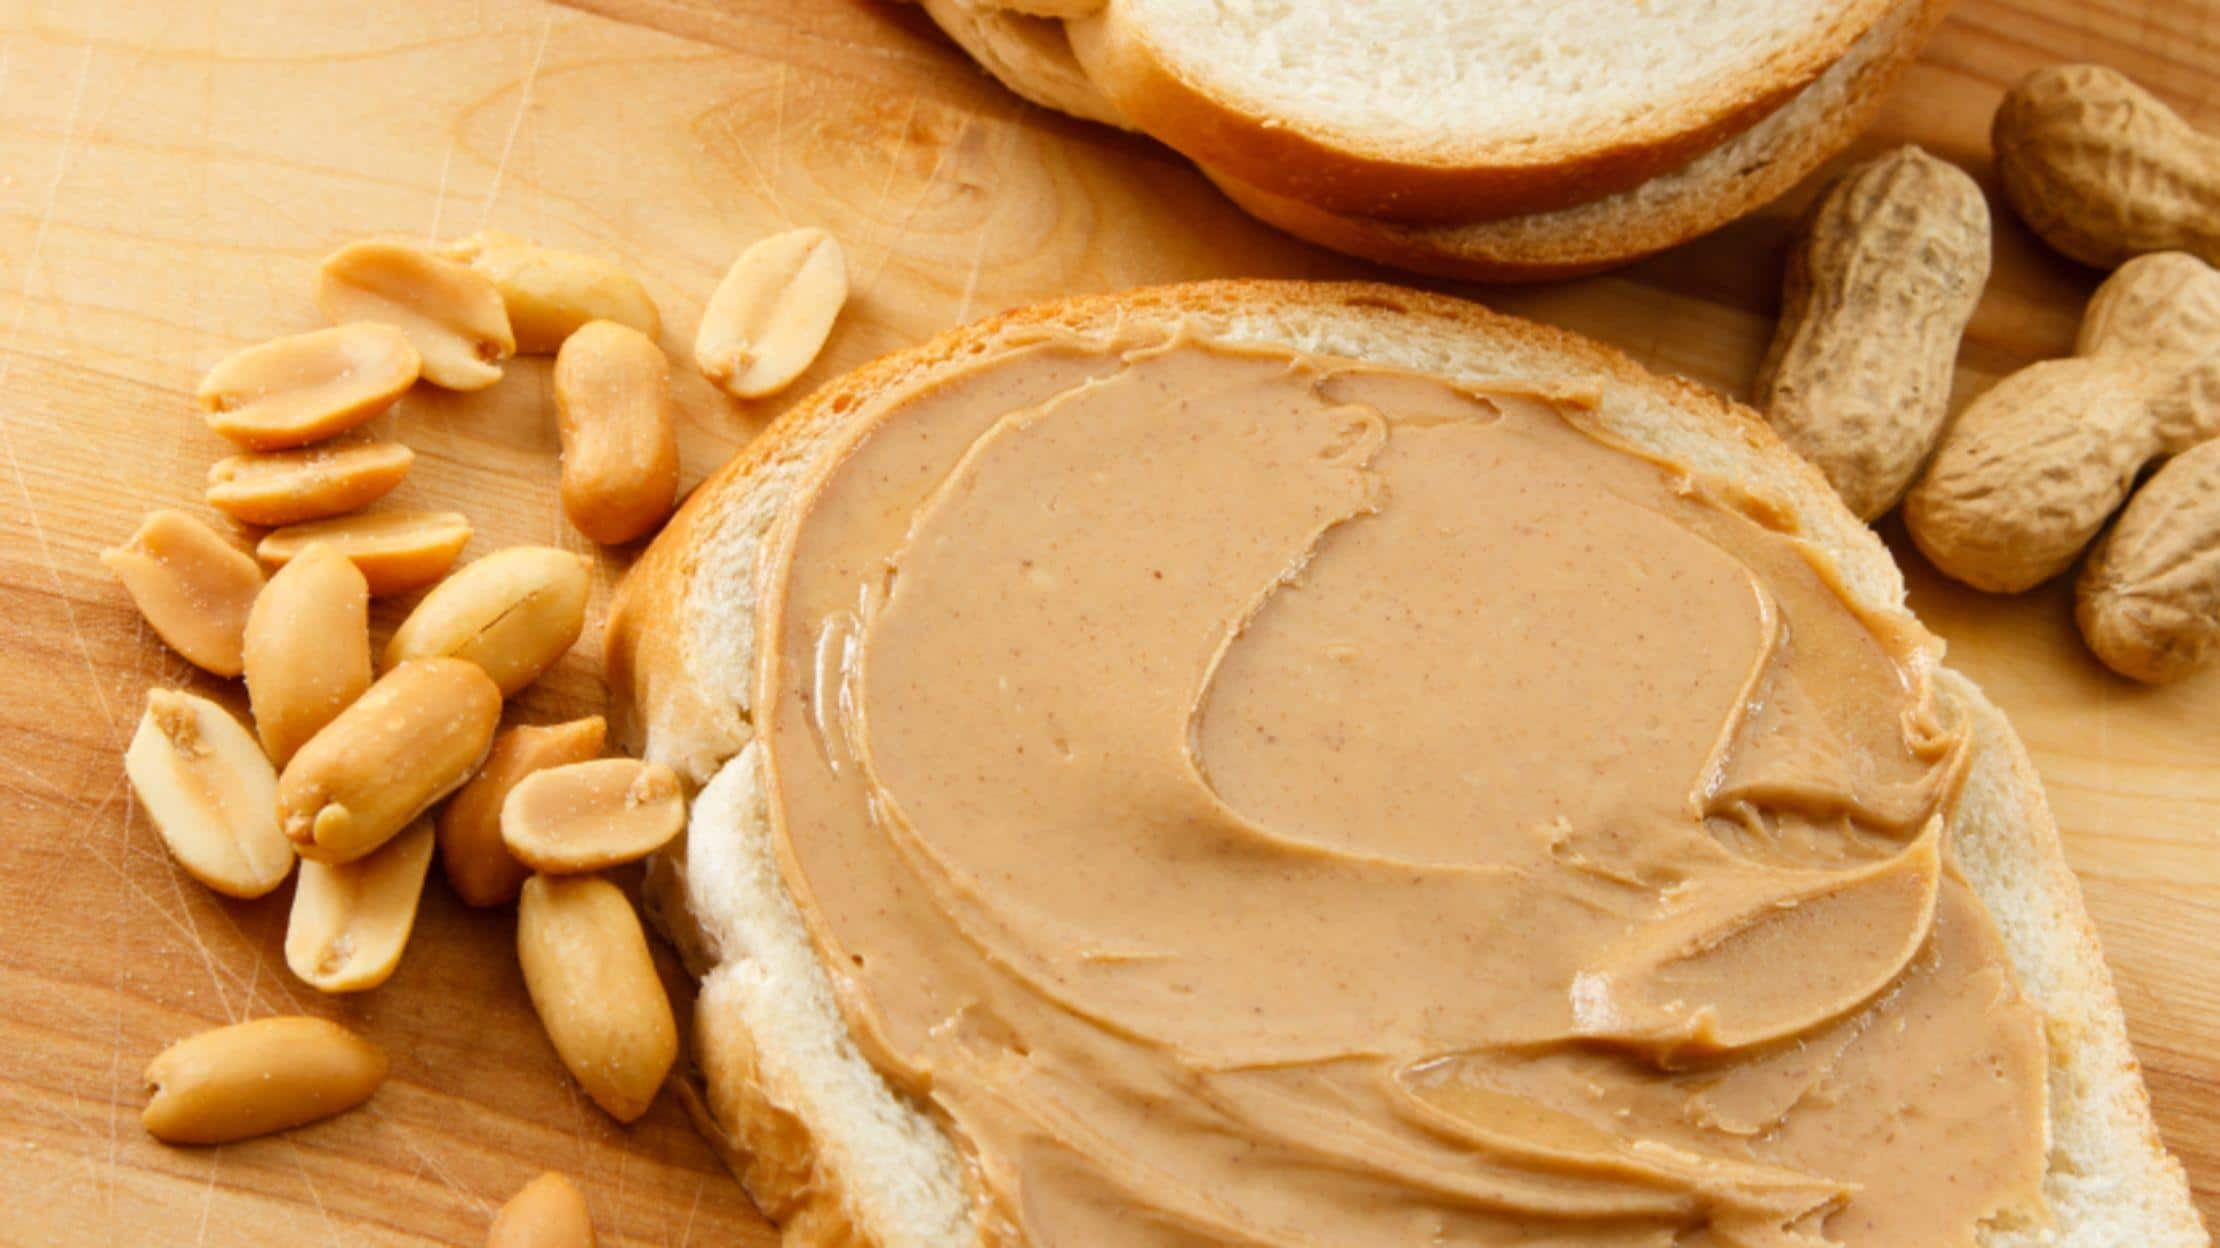 Interesting Facts About Peanut Butter1